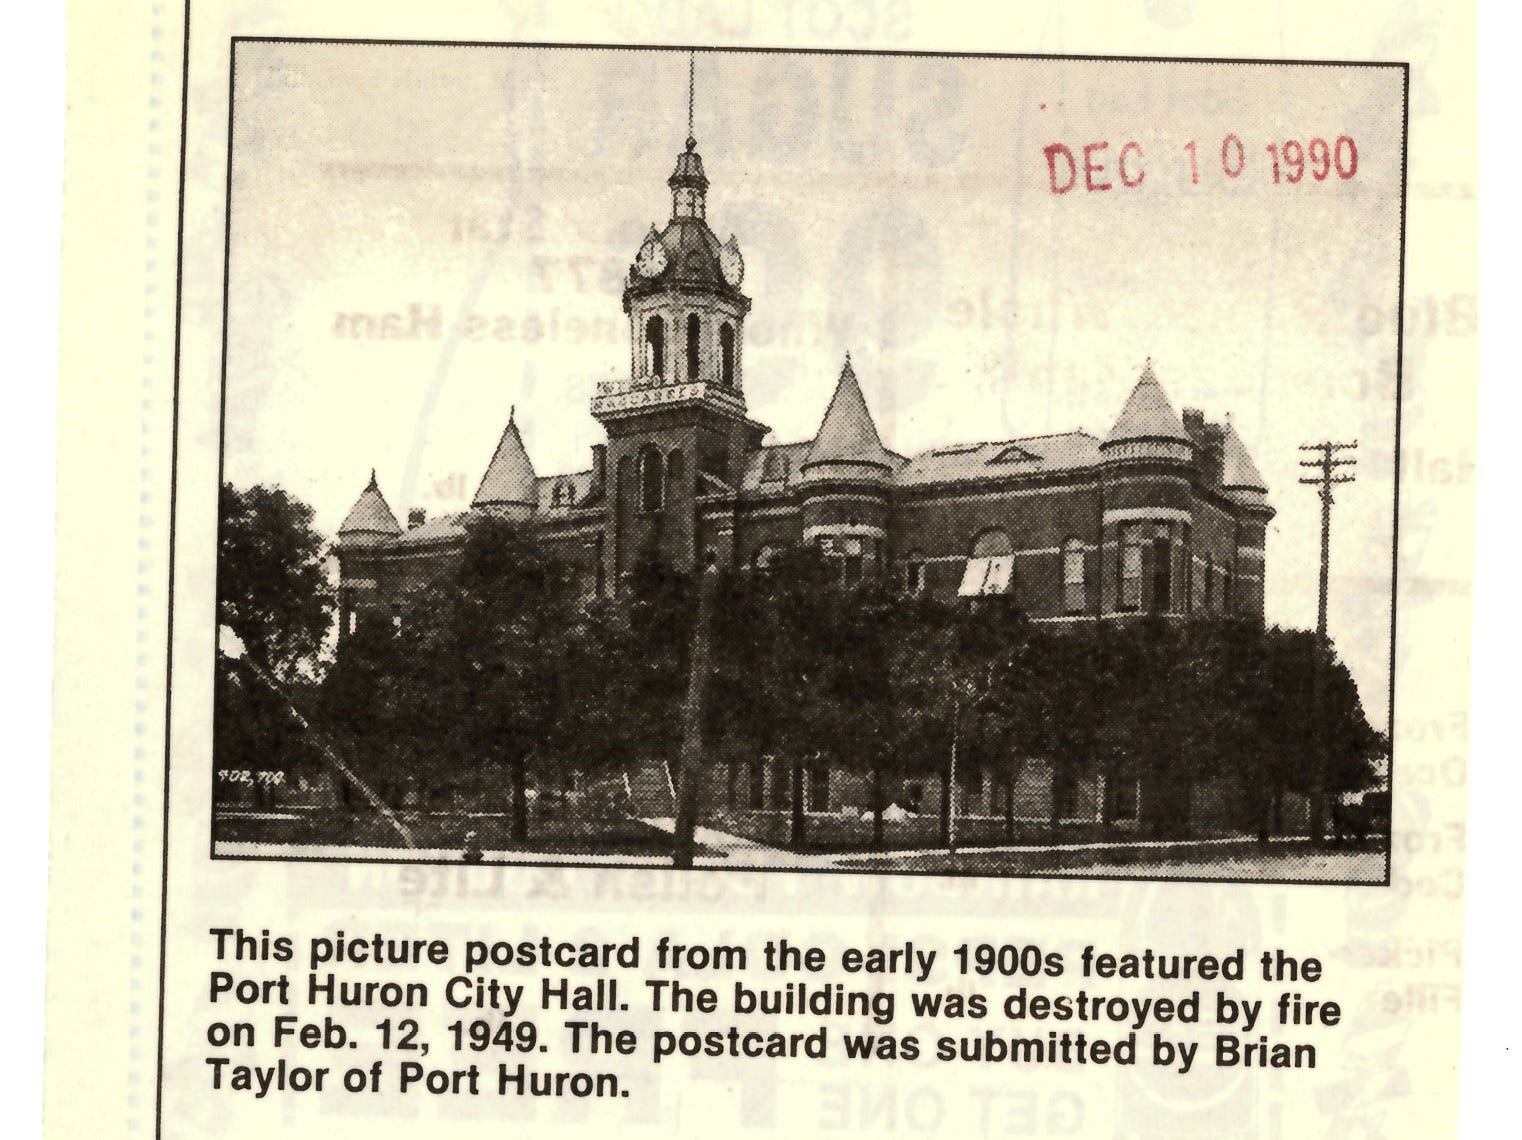 A newspaper clipping shows the Port Huron City Hall as it was seen in the early 1900s. Even though the building was owned by the city, it housed both city and county offices.